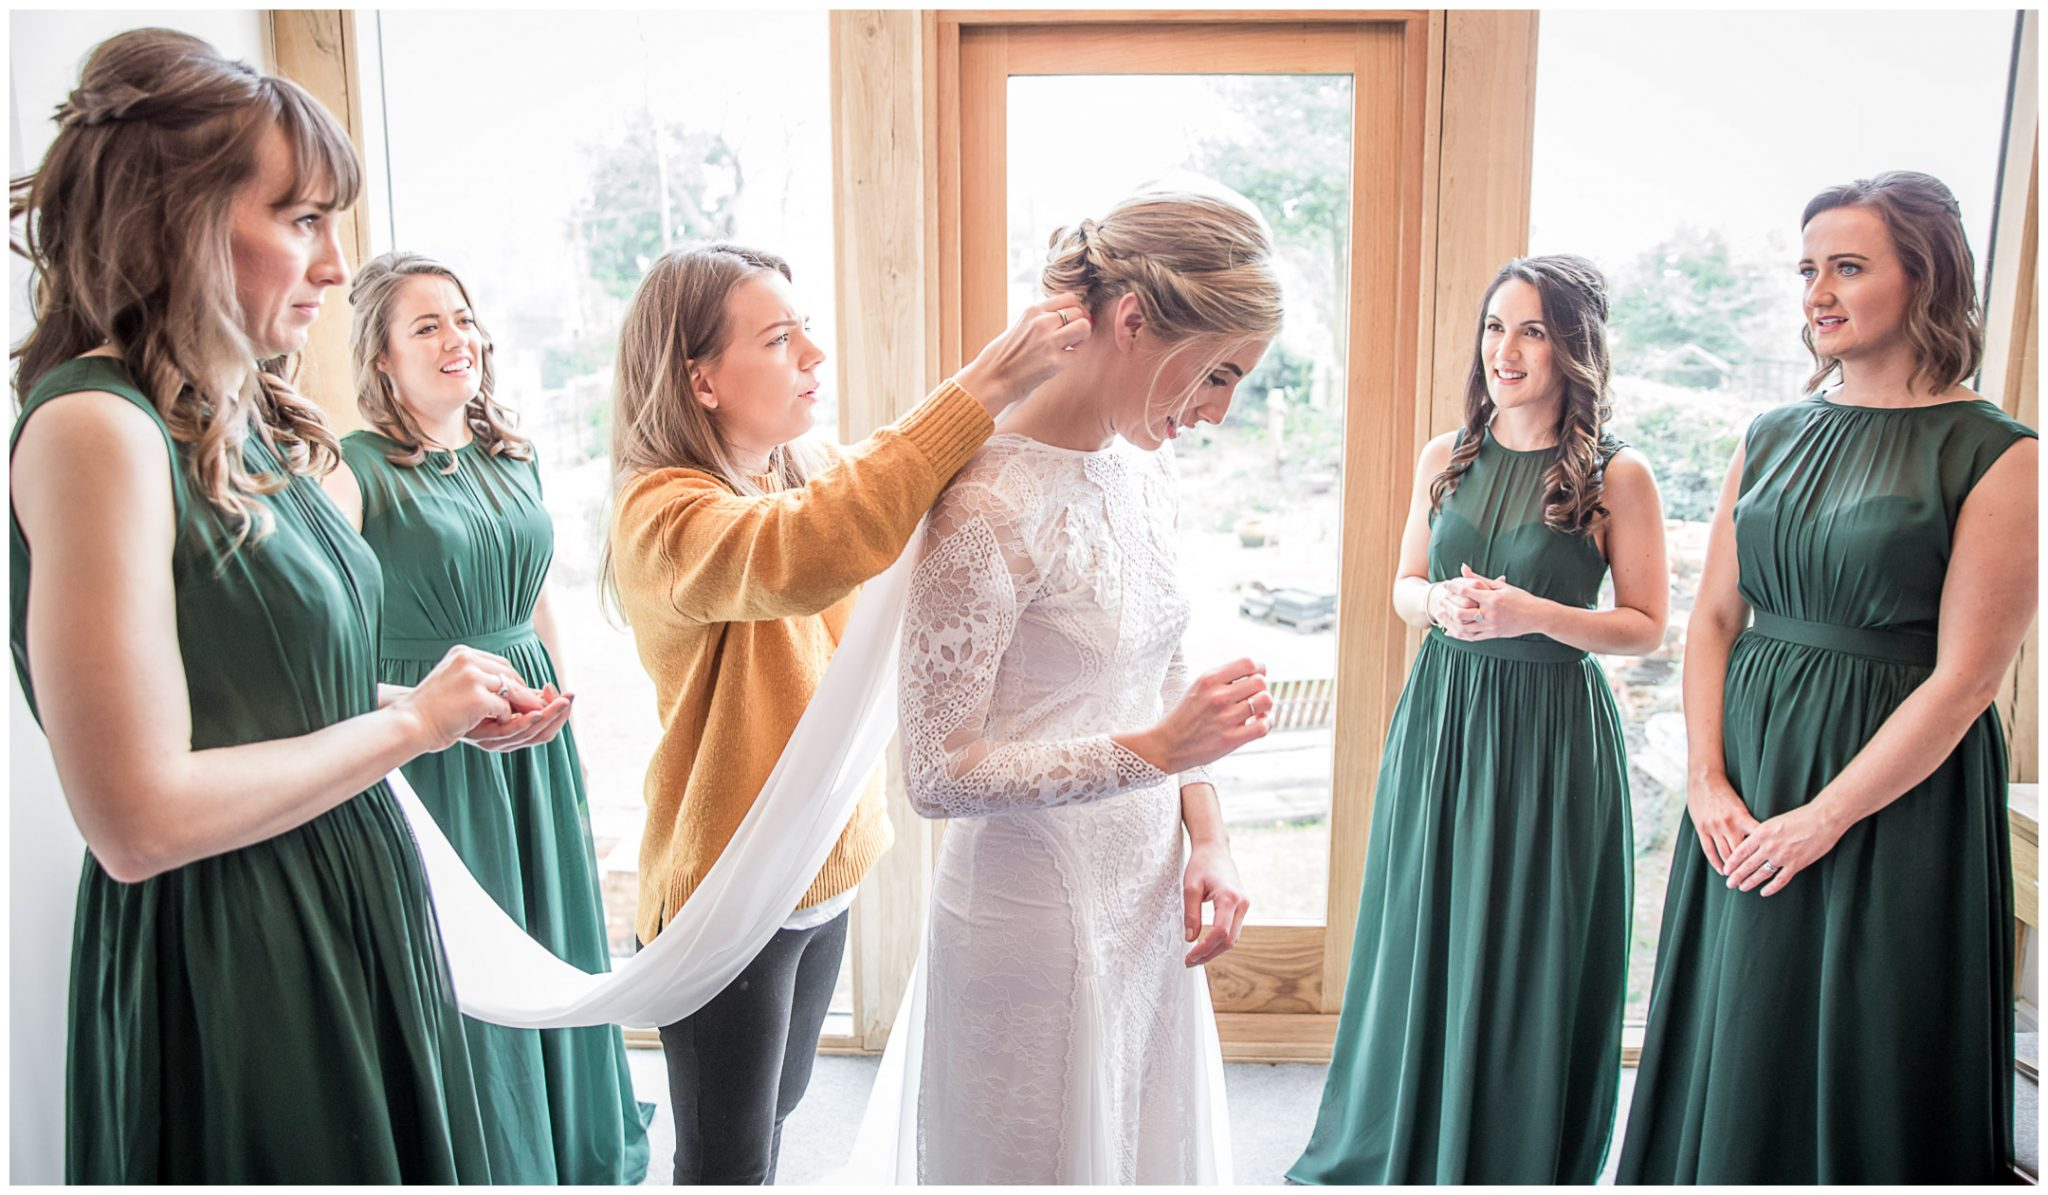 The hairdresser fixes the veil into the bride's hair